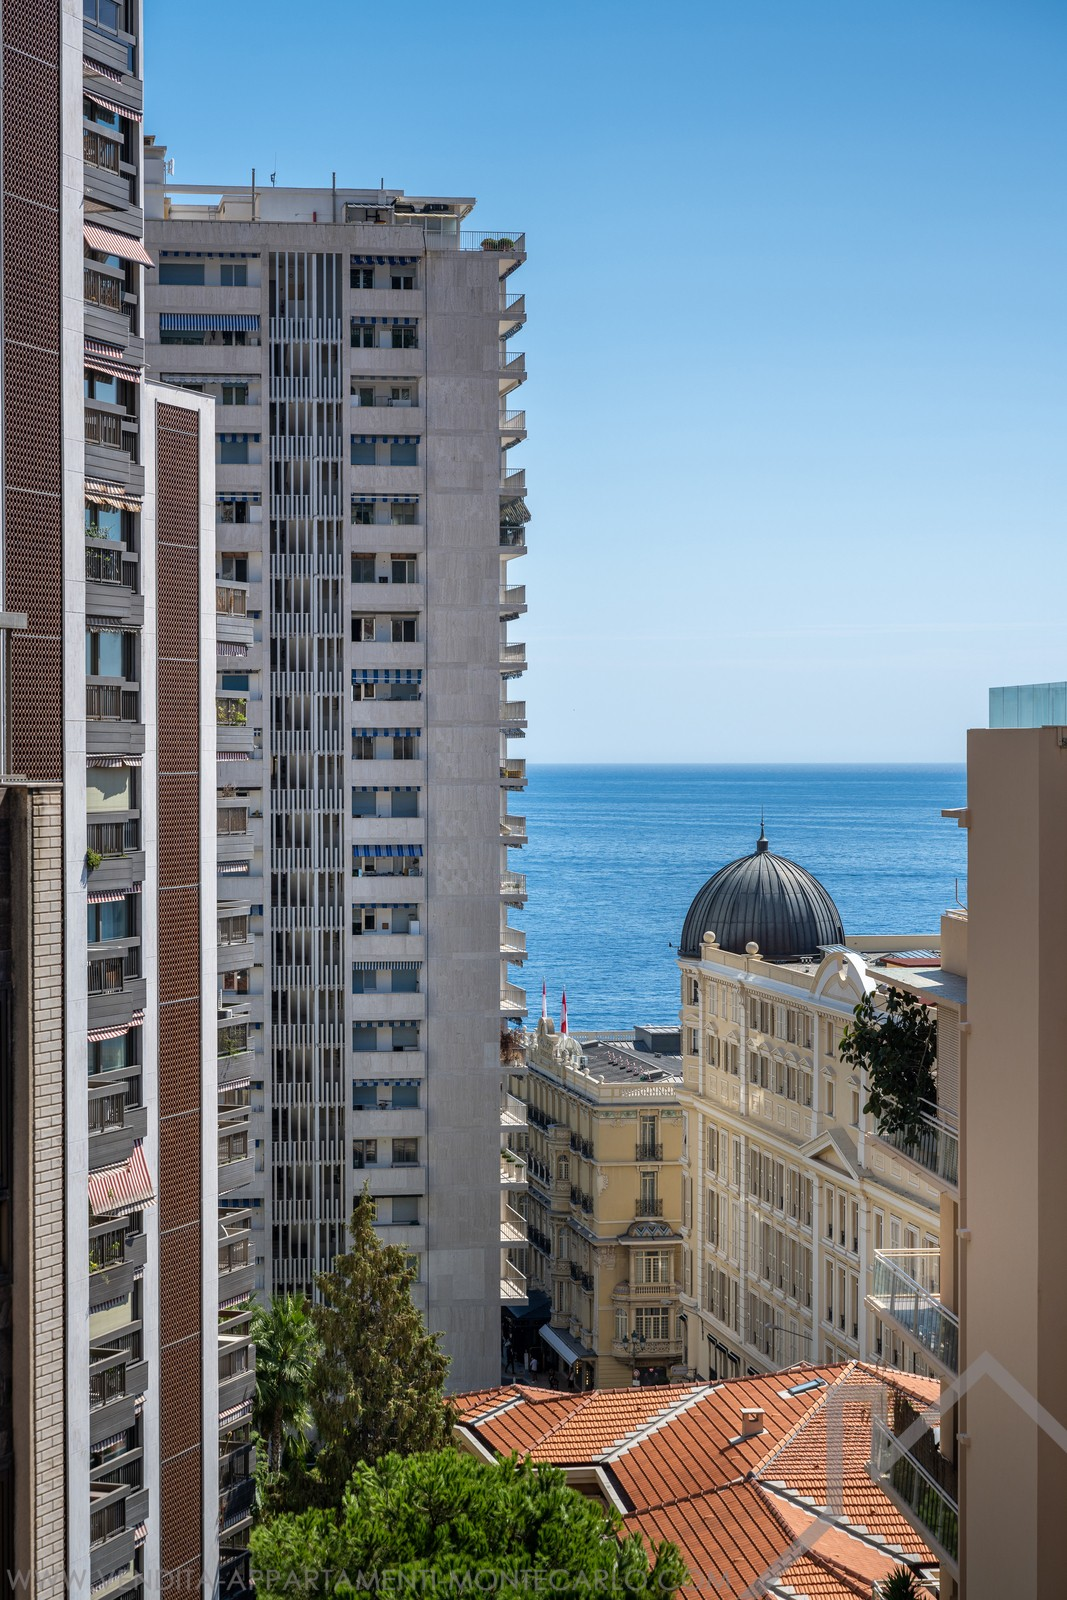 LUXURIOUS 4 ROOM APARTMENT IN CARRÉ D'OR - Properties for sale in Monaco